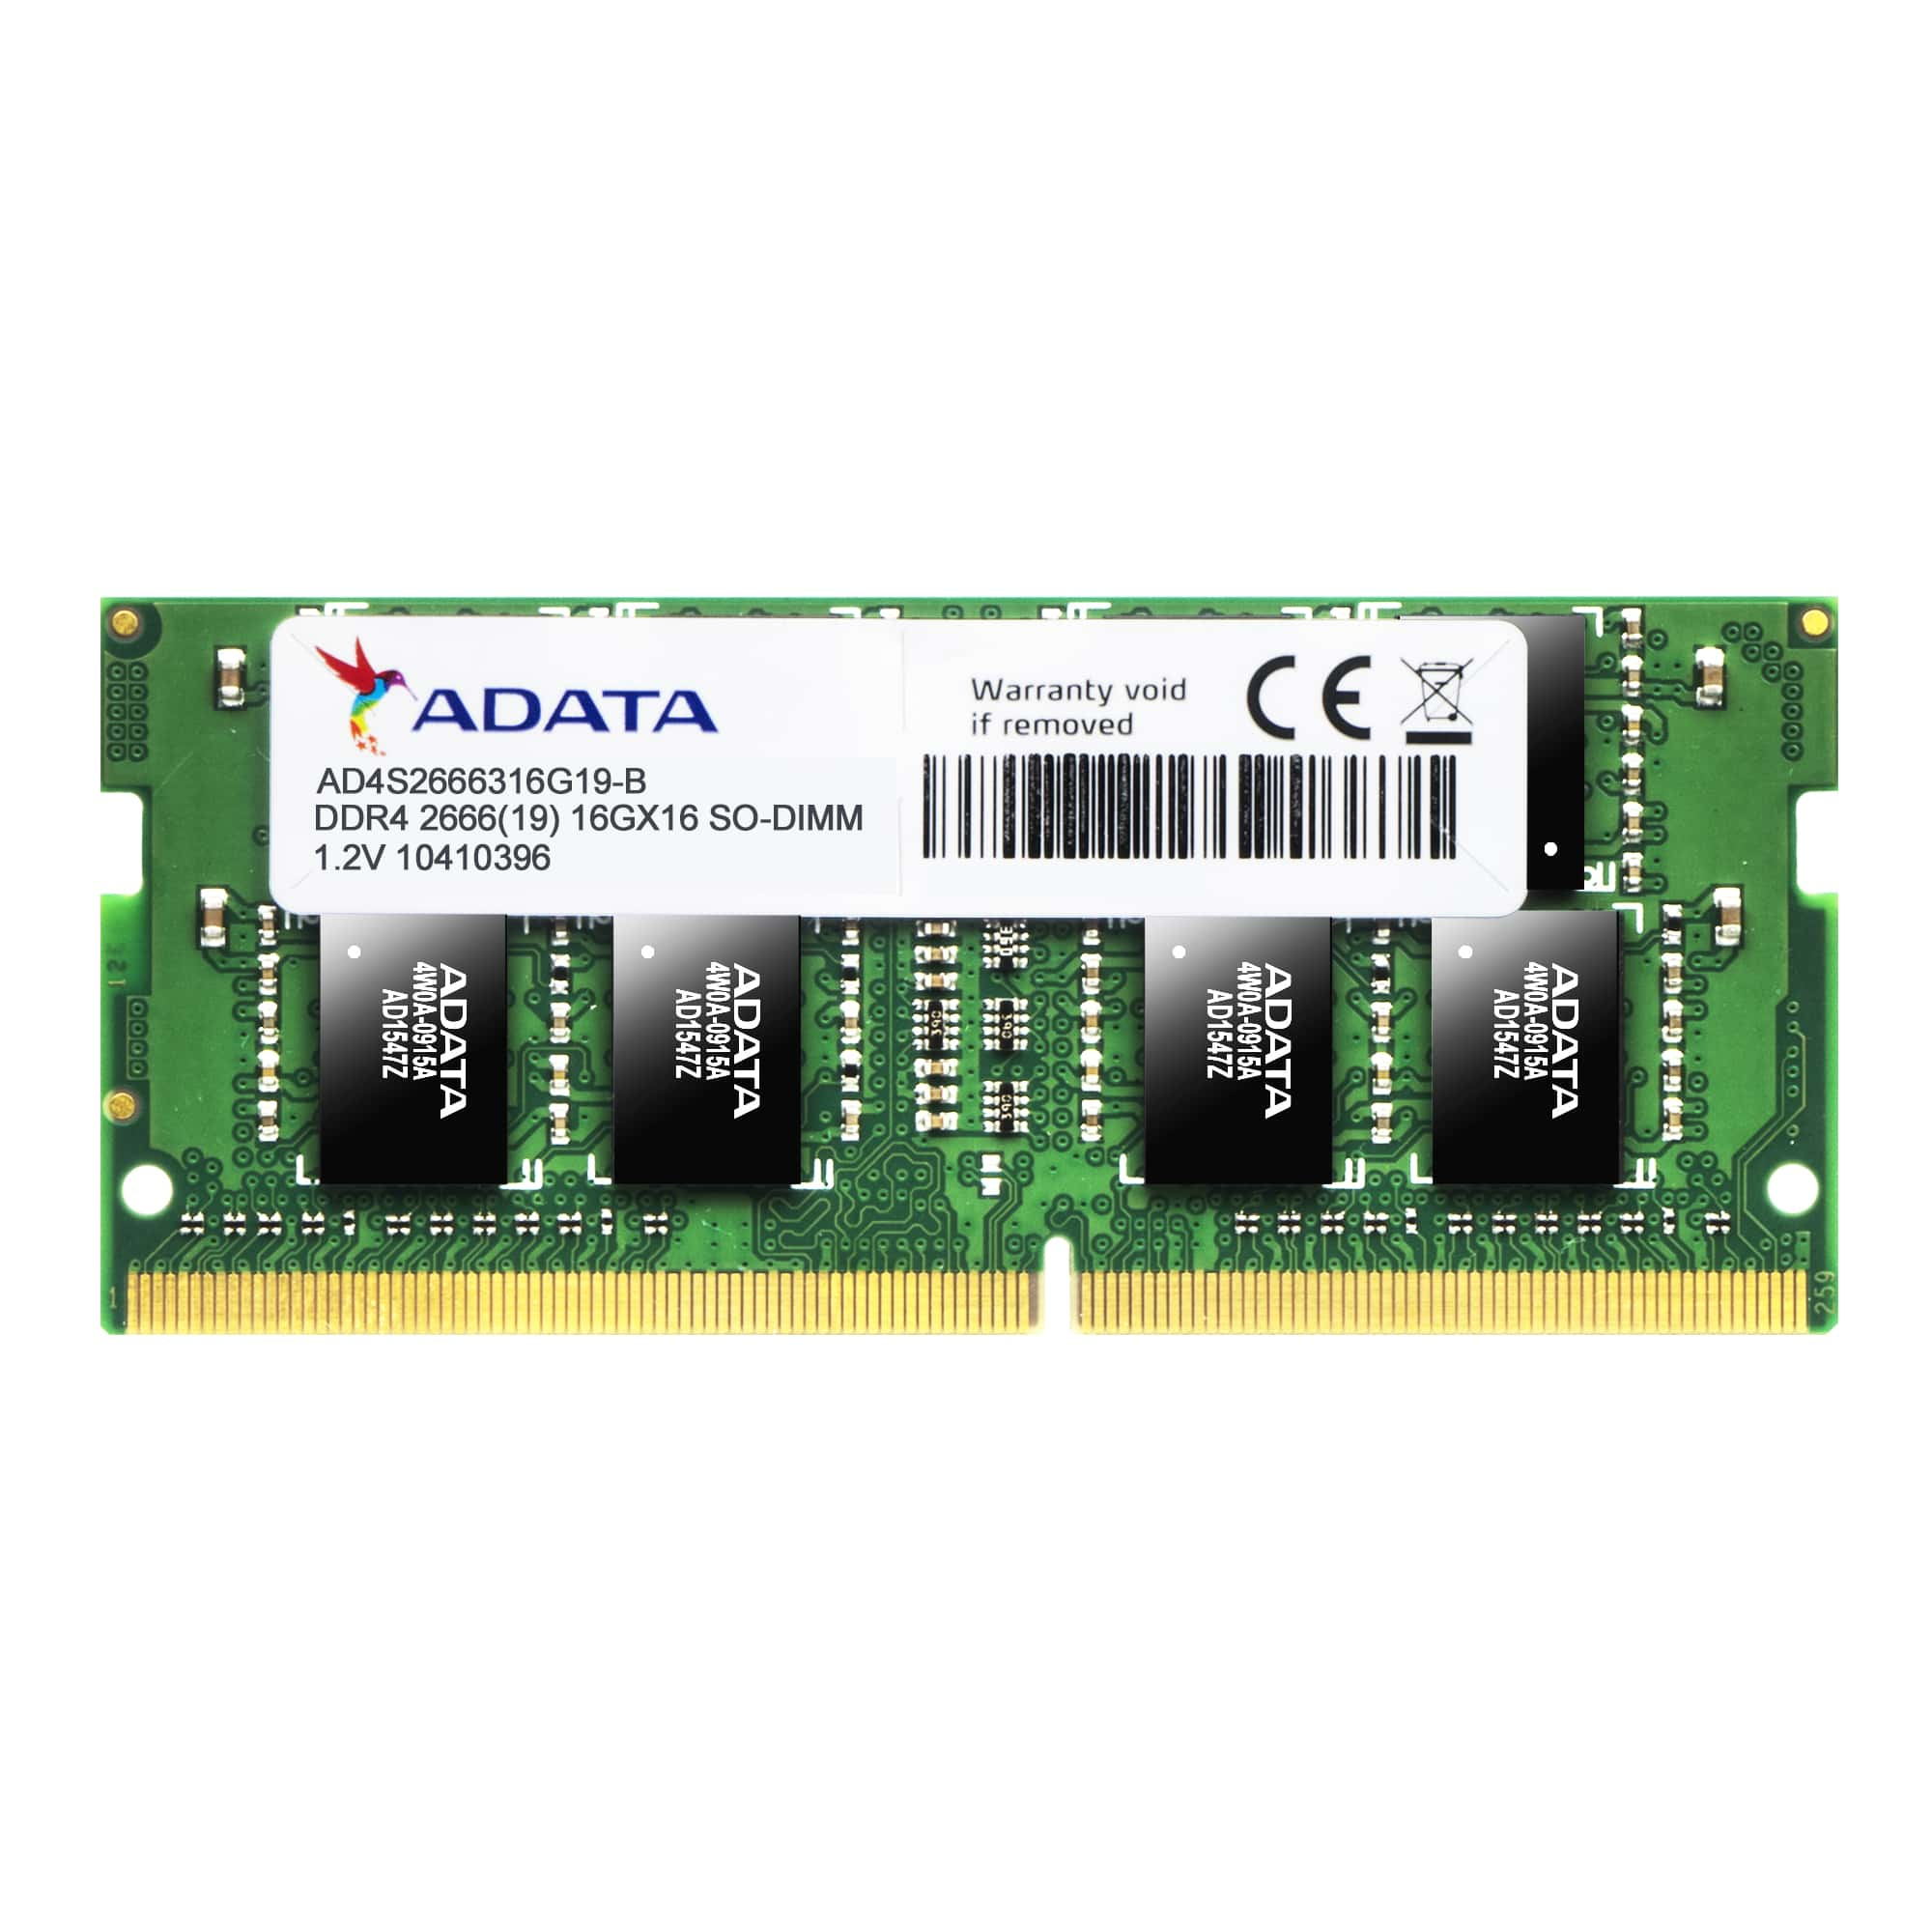 Adata Premier Series - Ddr4 - 4 GB - So-DIMM 260-pin - 2666 MHz / Pc4-21300 - Cl19 - 1.2 V - Unbuffe